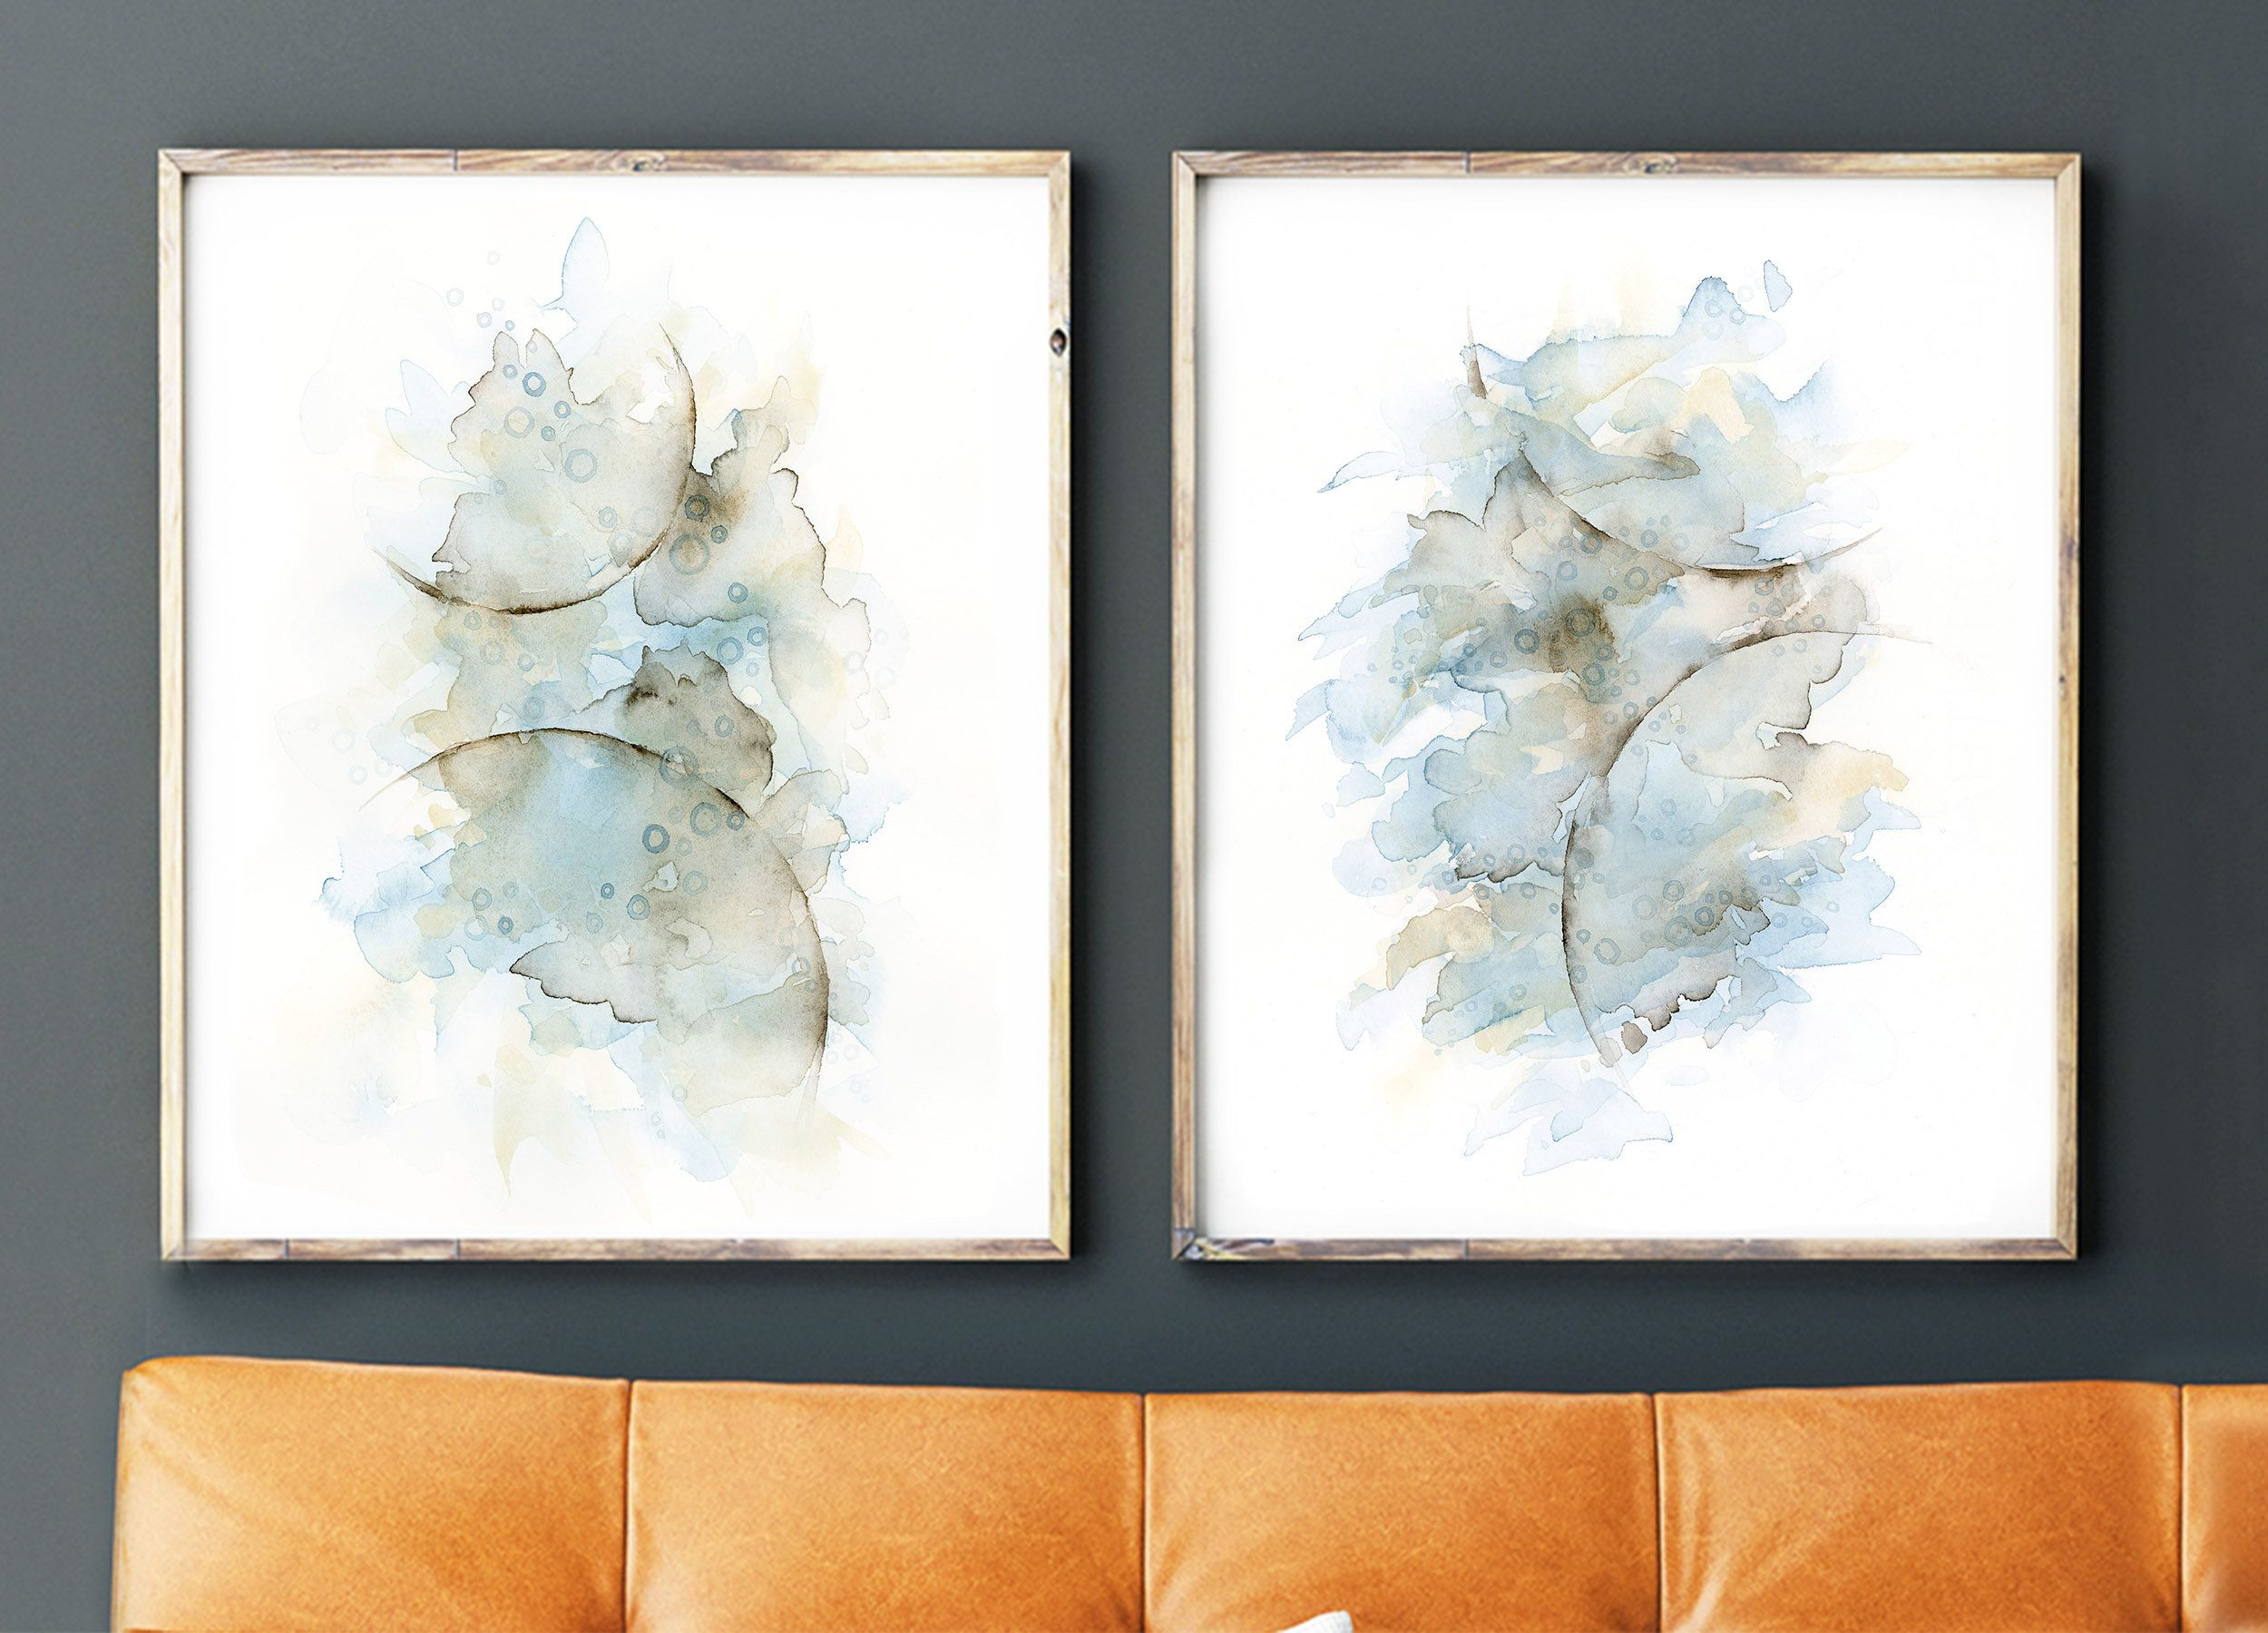 Diptych Abstract Painting Set Of 2 Prints Blue Grey Brown Artwork For Walls Living Room Wa Diptych Wall Art Modern Art Paintings Abstract Modern Art Abstract